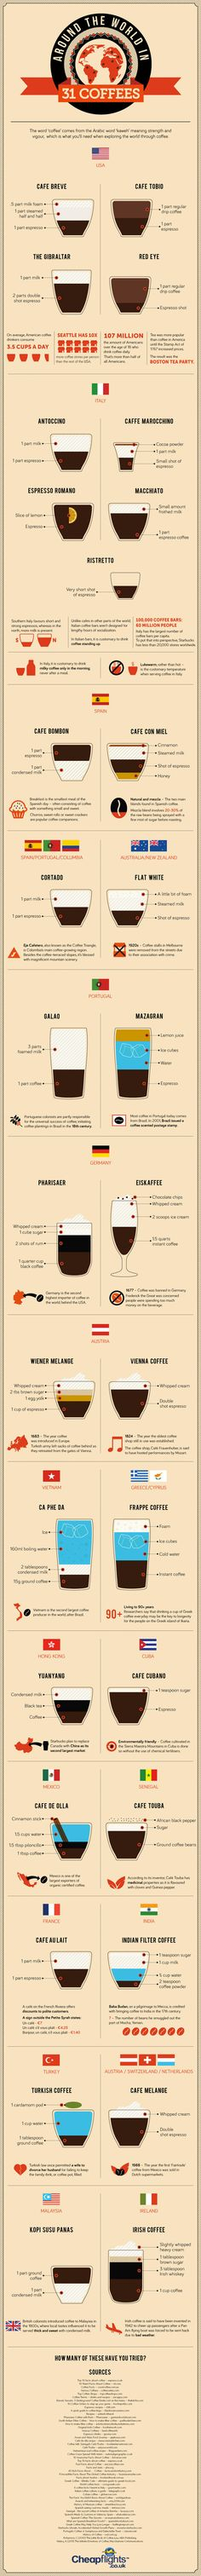 How People Drink Coffee around the World I Love the Irish Coffee  LayZeeBee